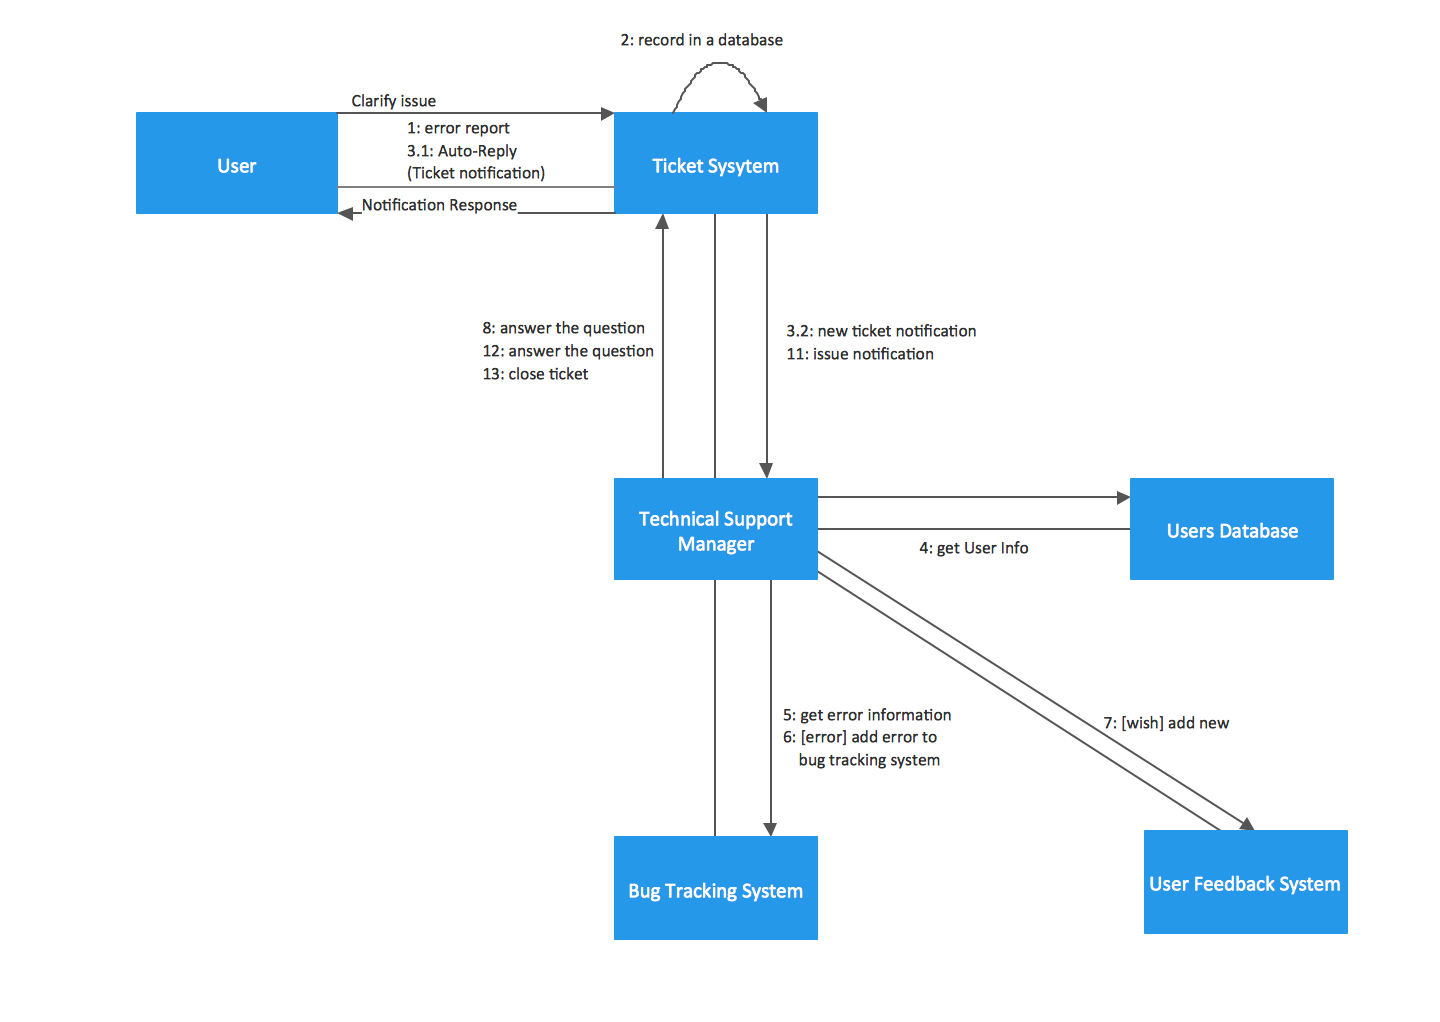 UML collaboration diagram. Ticket processing systems